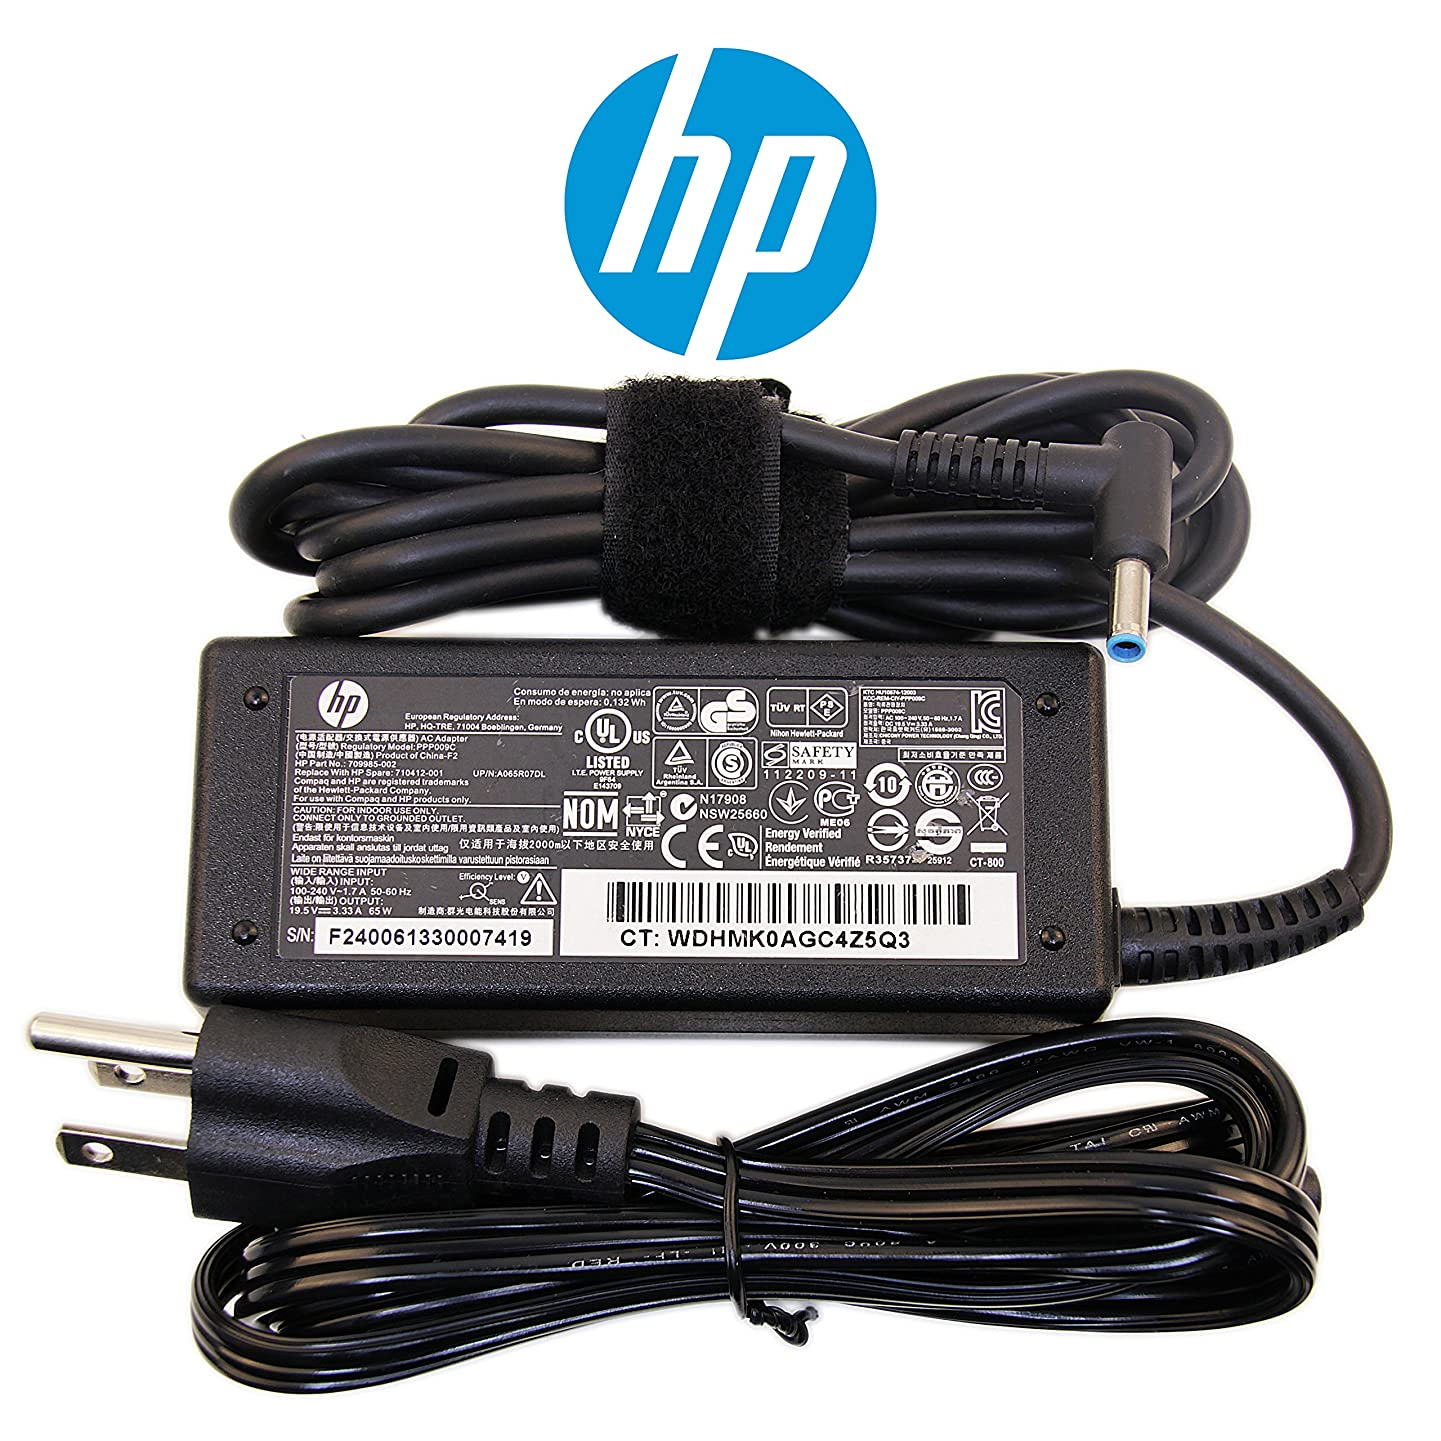 HP Compatible 65W Slim Charger for HP Pavilion 10 TouchSmart Series Laptop Notebook Power-Adapter-Cord (Original Version)